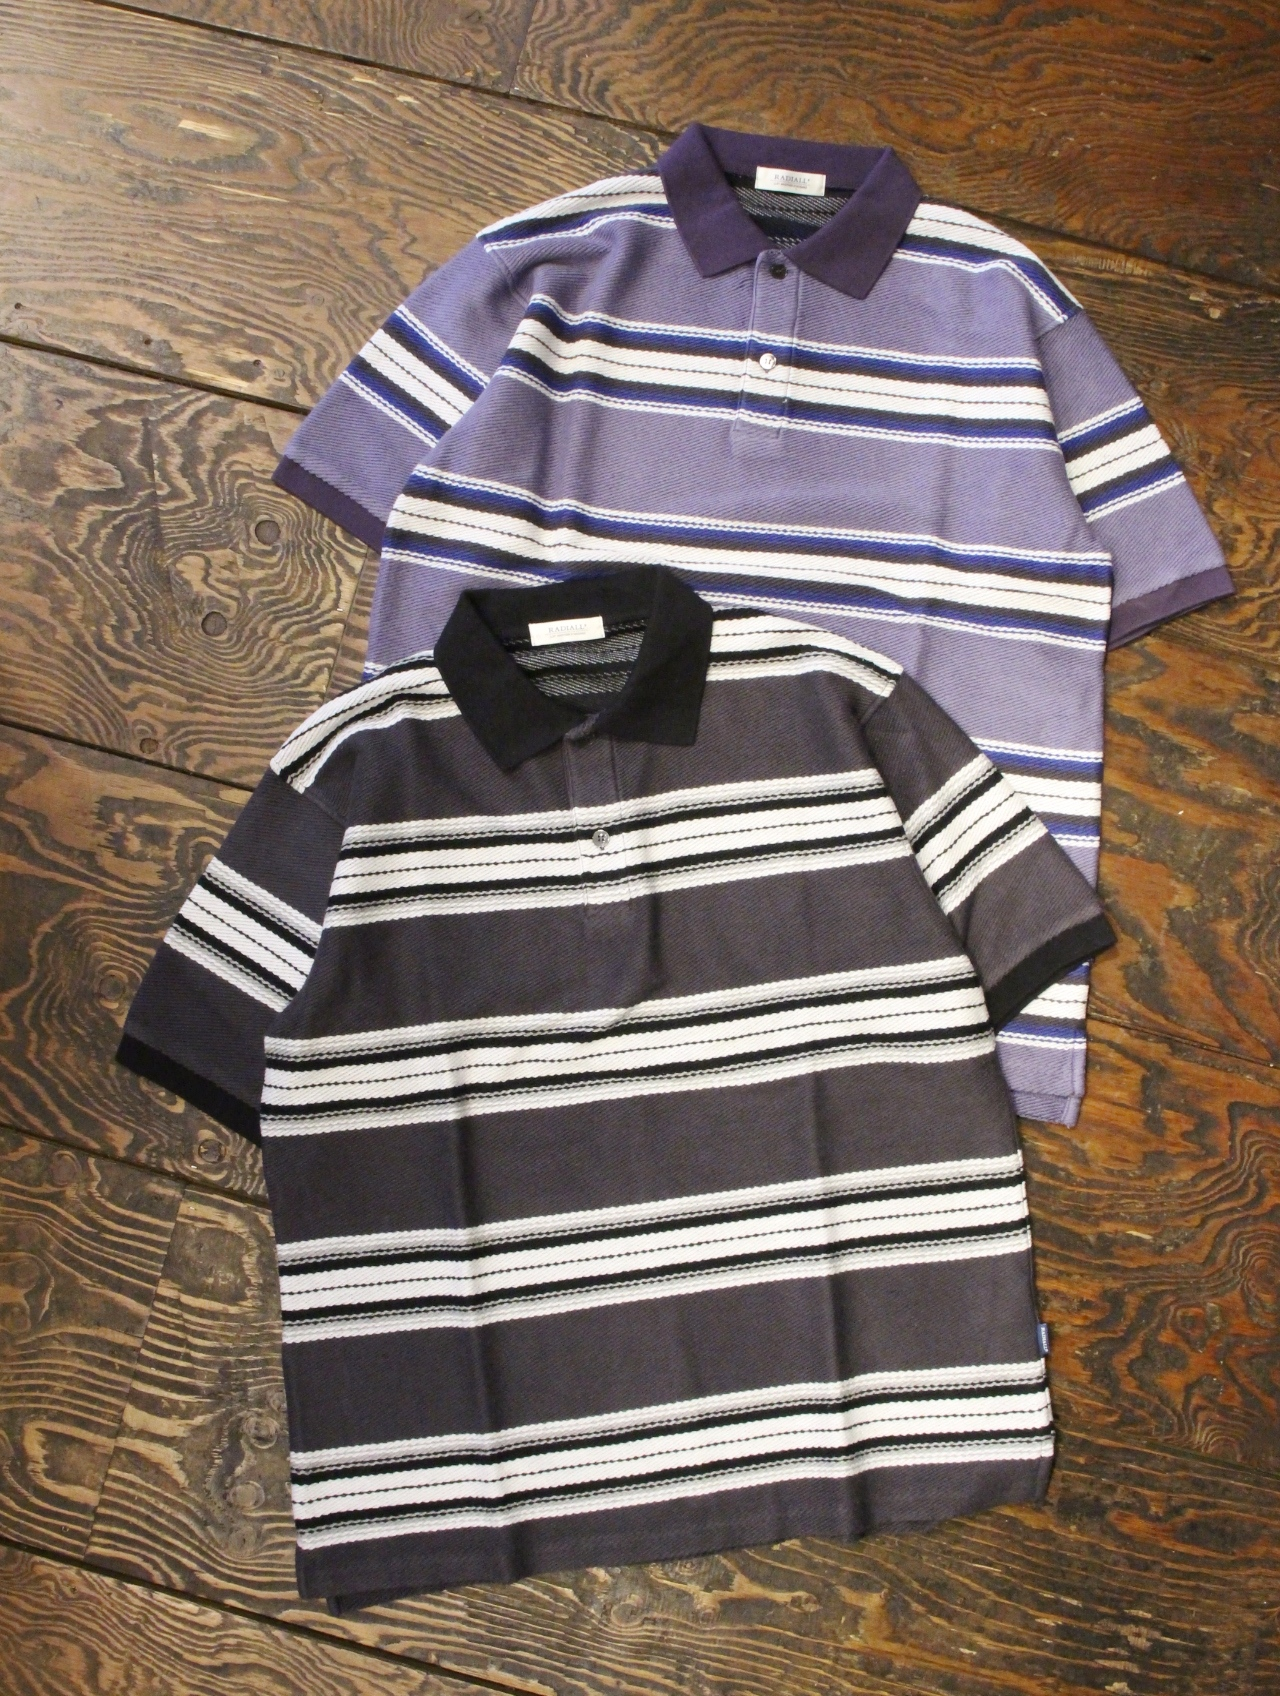 RADIALL    「CISCO - POLO SHIRT S/S」 メキシカンボーダーポロシャツ